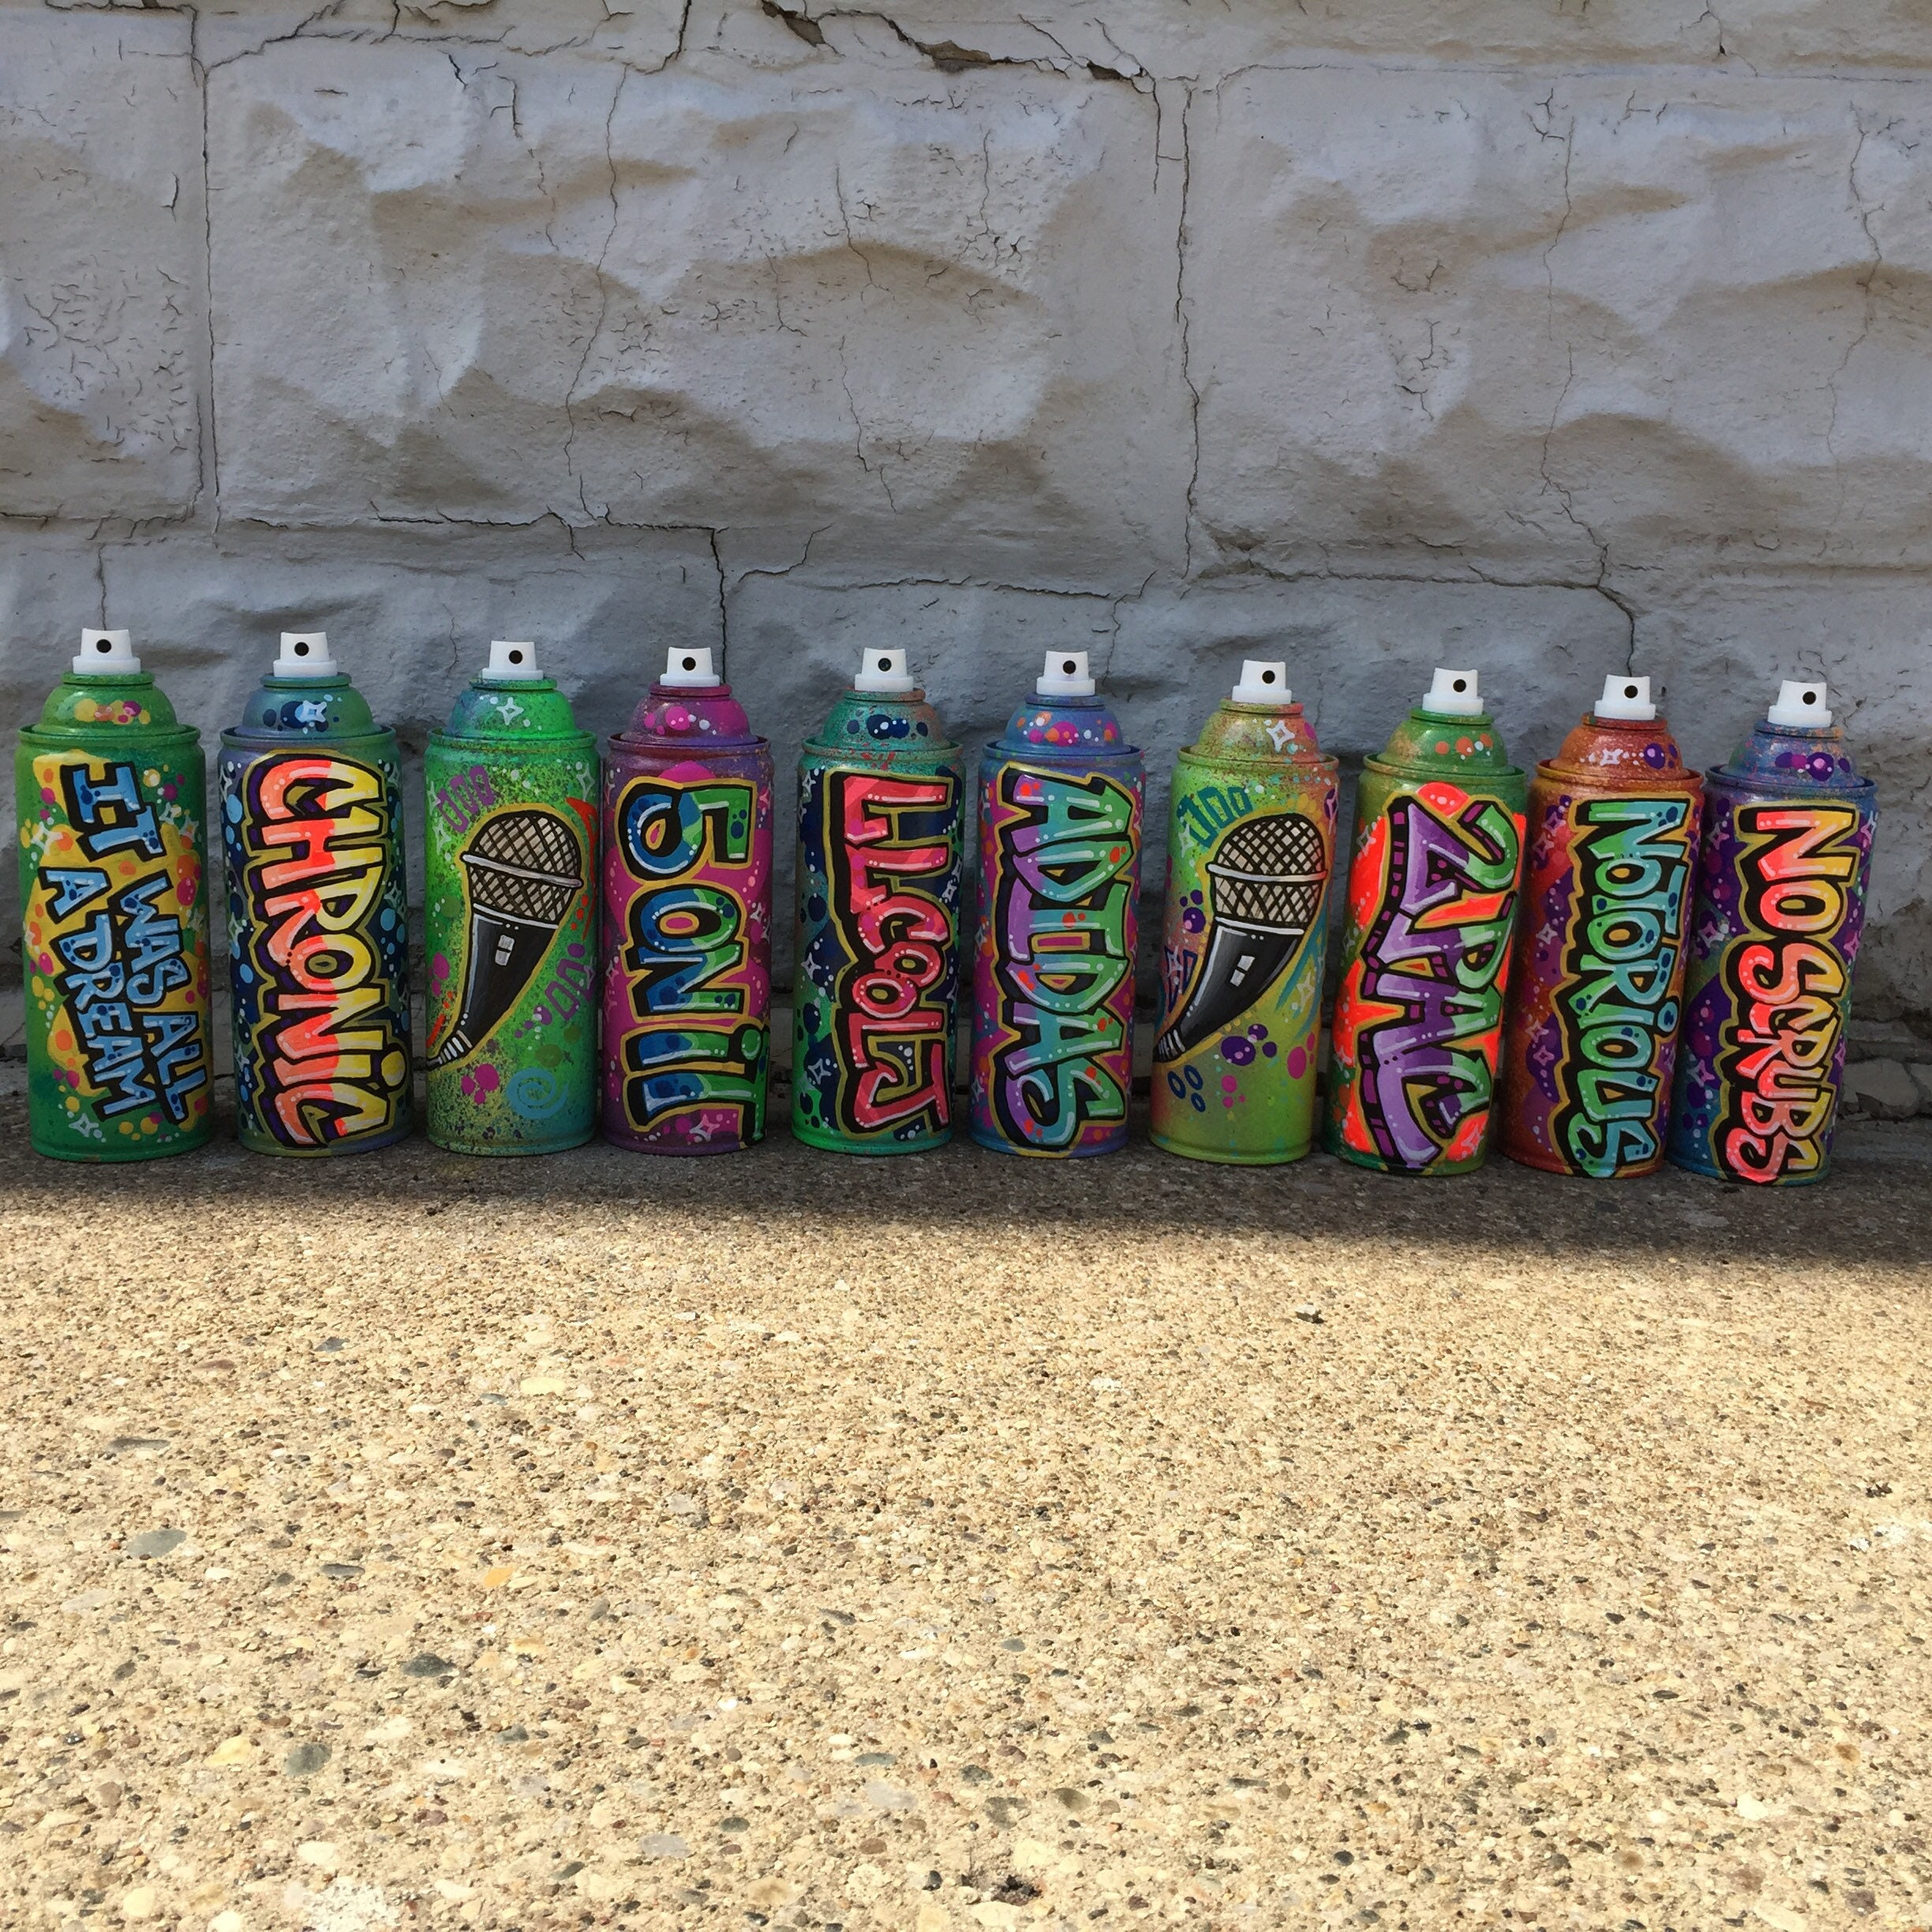 5 personalized graffiti spray paint cans at whole sale price | Etsy